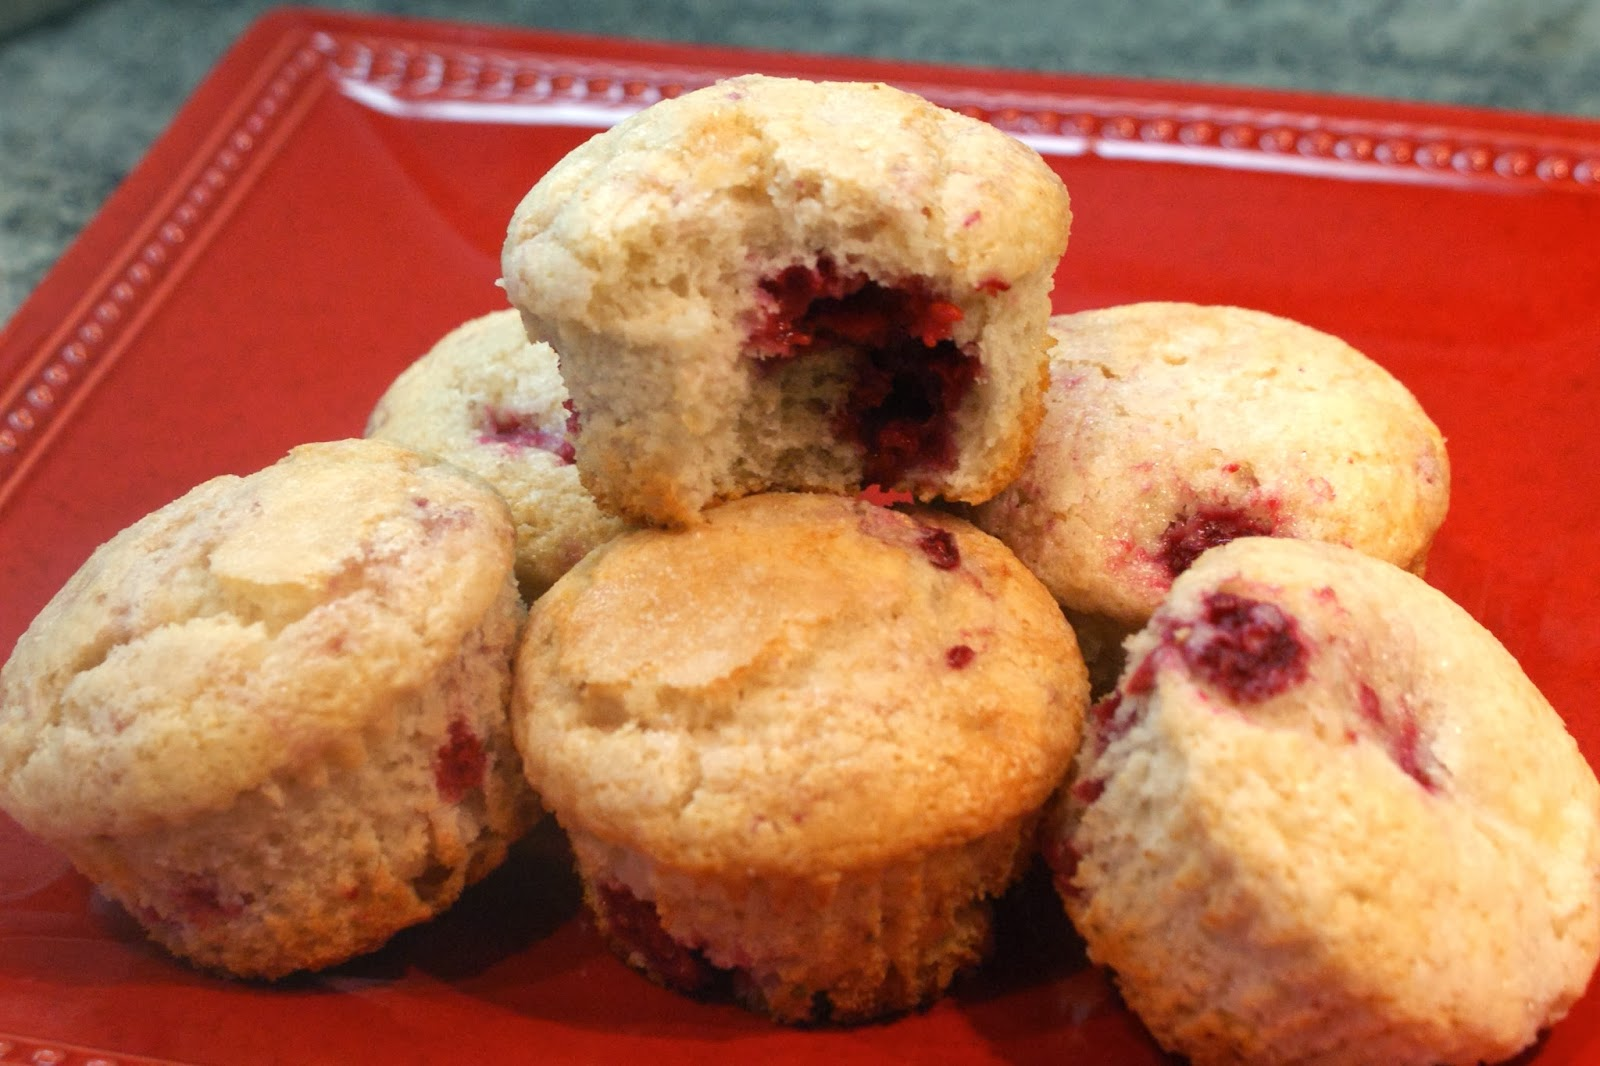 The Baker's Mann: Raspberry Lemon Muffins